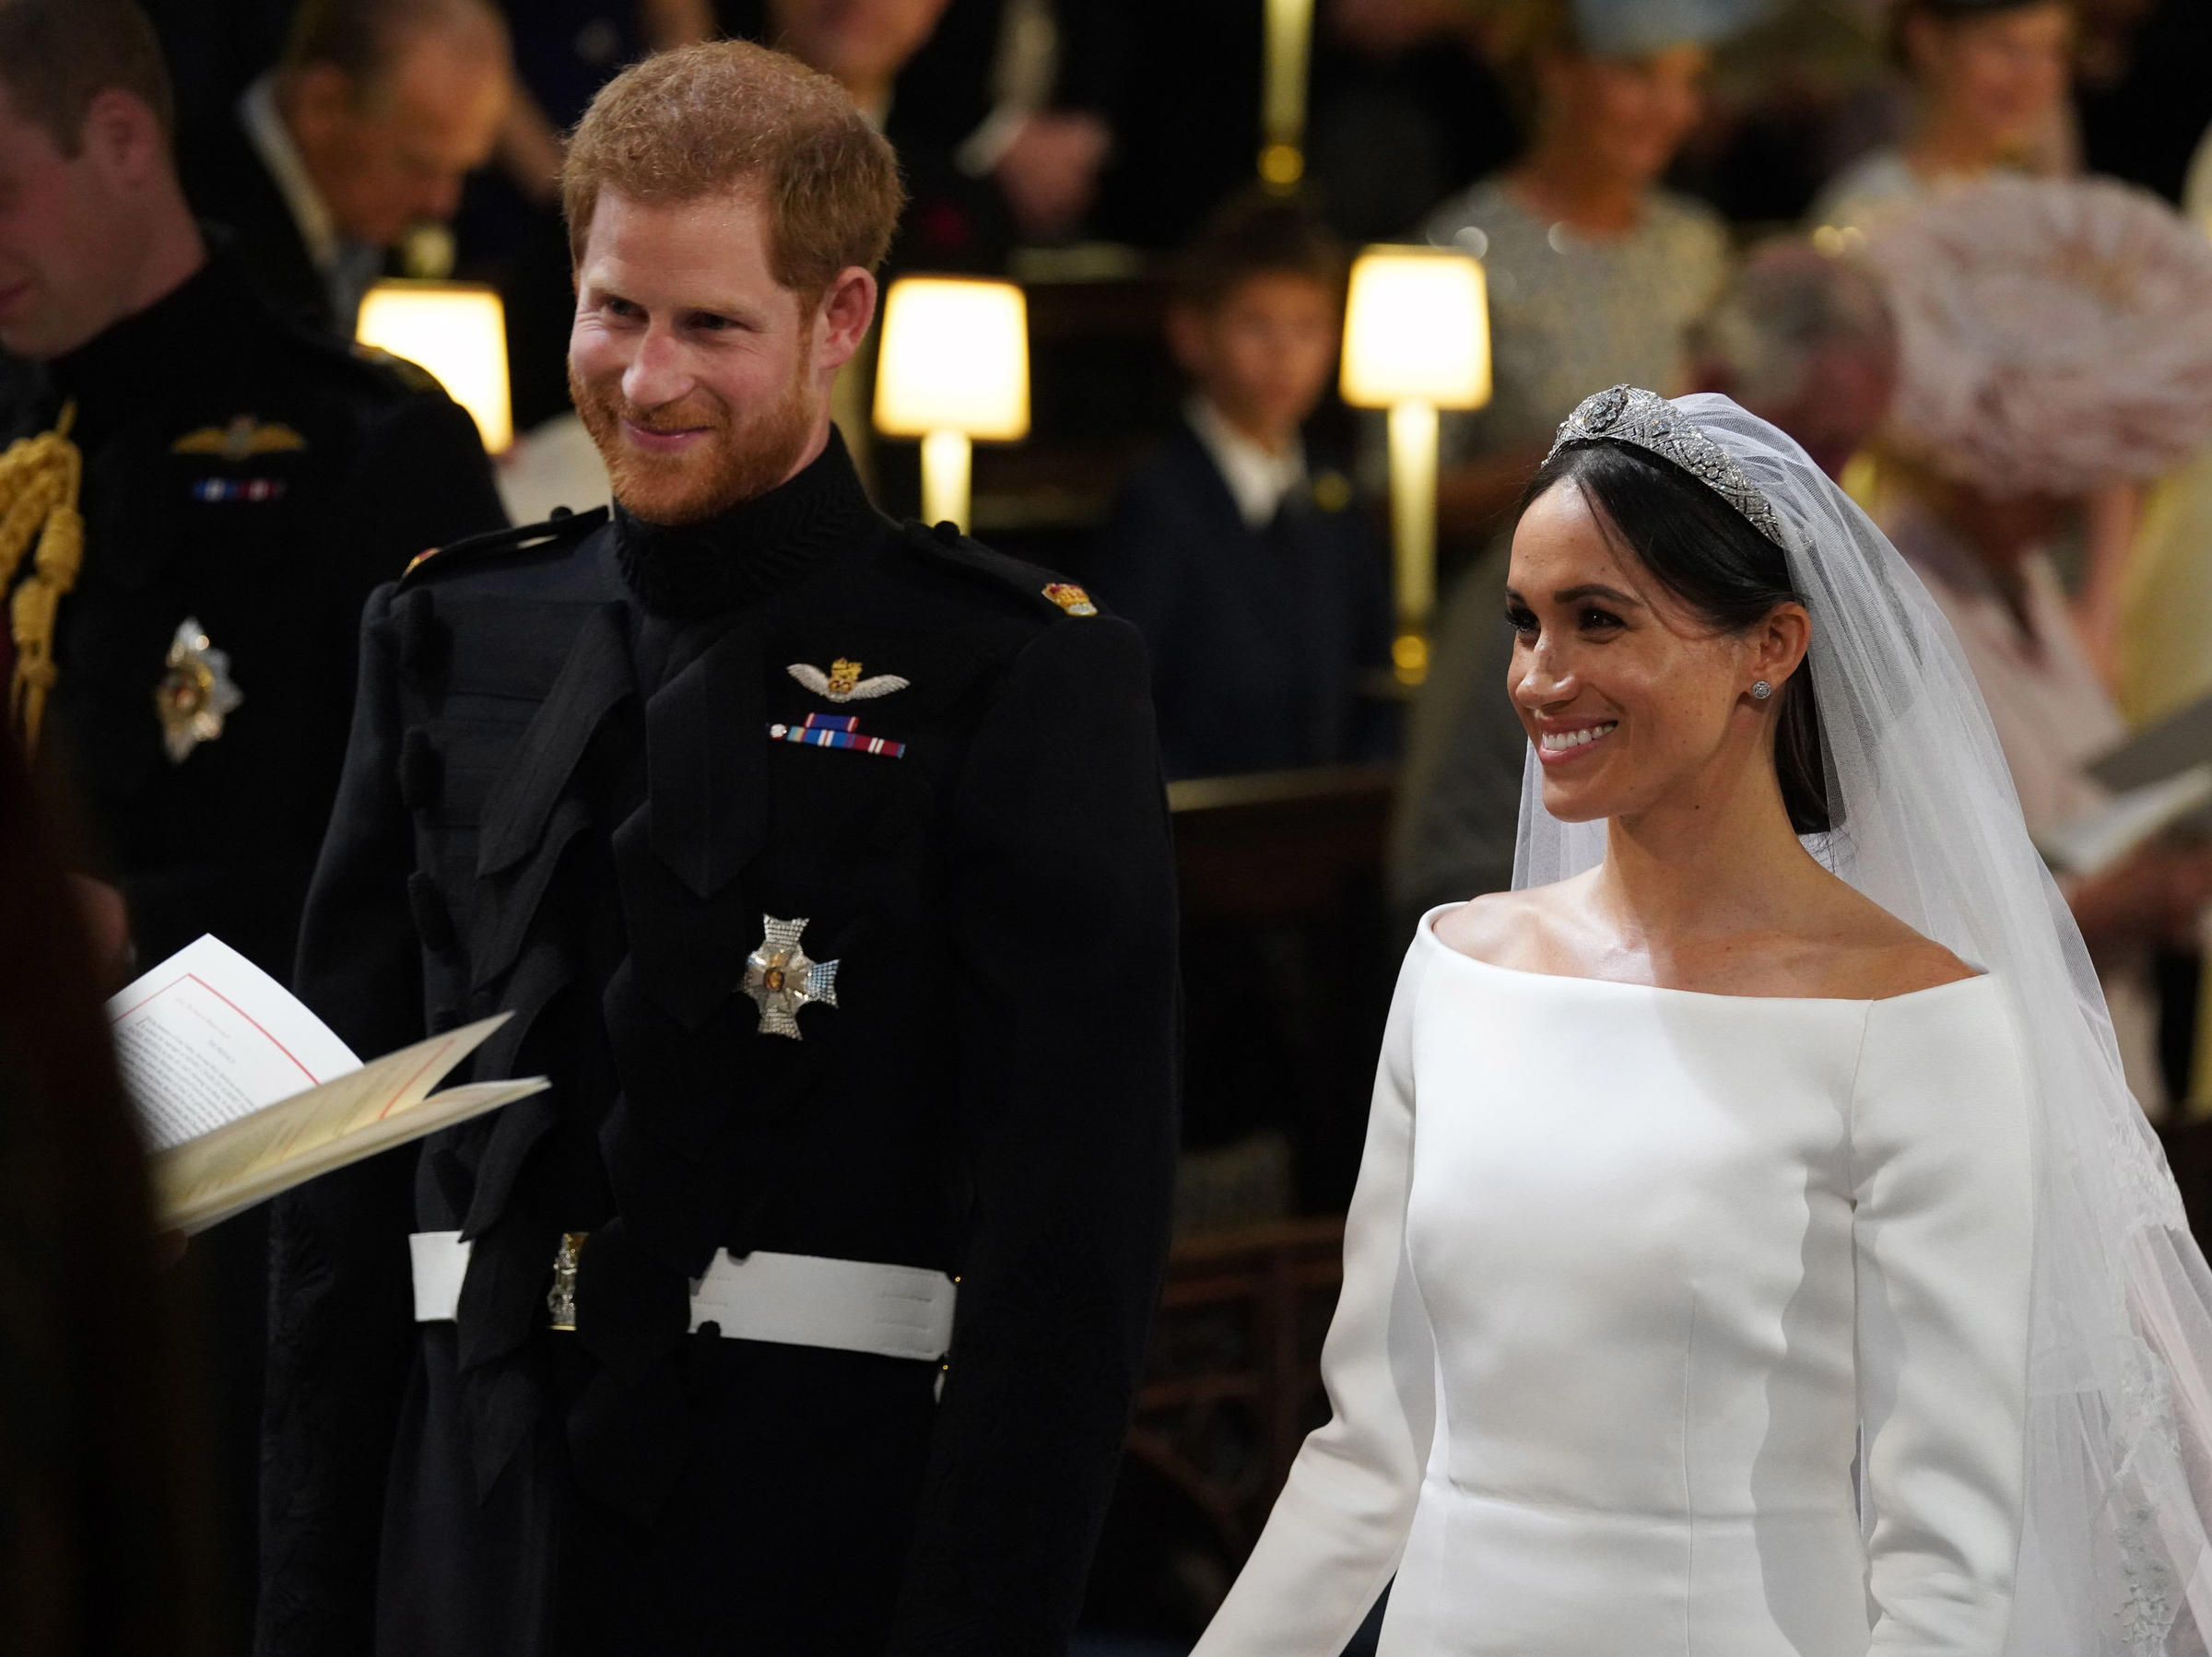 b937a127e78d6 Prince Harry and Meghan Markle became the Duke and Duchess of Sussex upon  their wedding at St. George s Chapel at Windsor Castle on Saturday.